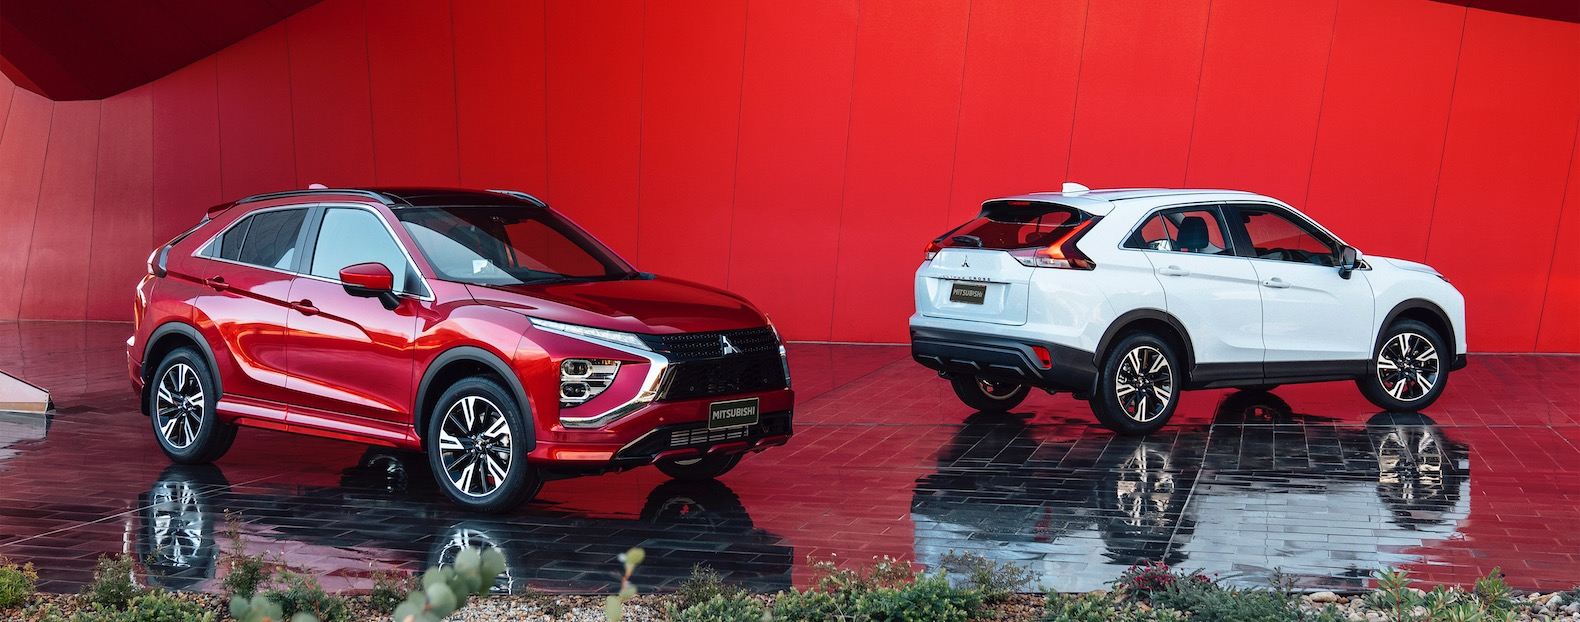 Following a teaser of the new Eclipse Cross released in September and the leak of ad leaflet scans several days ago, Mitsubishi has officially removed the wraps from the model.